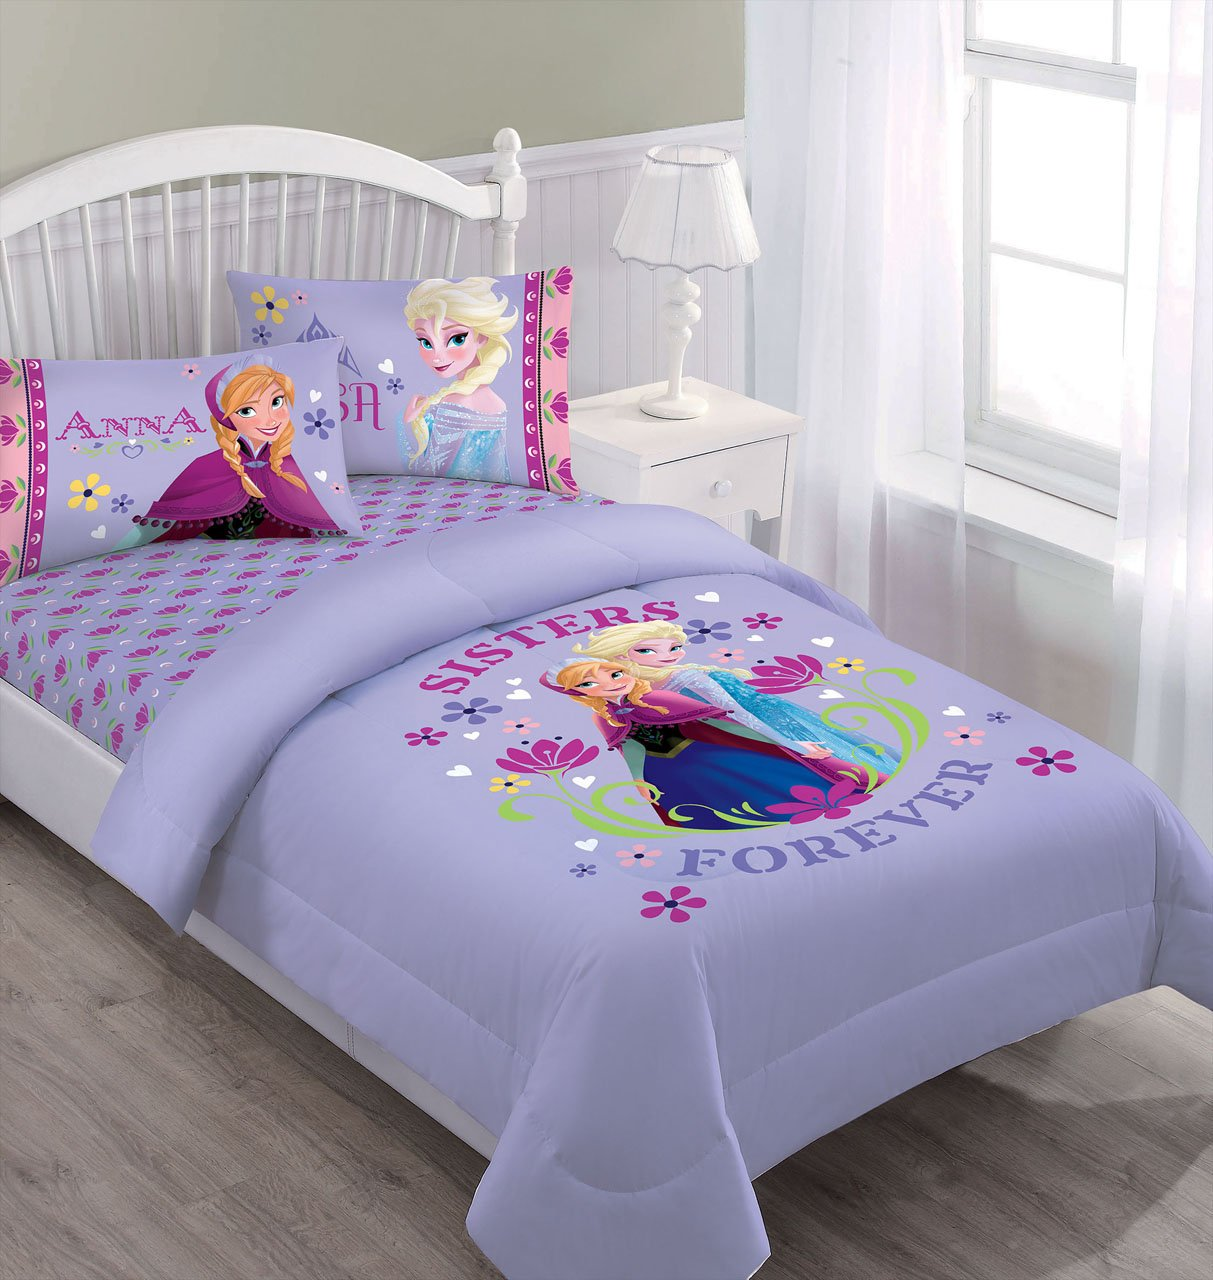 Charmant Amazon.com: Disney Frozen Nordic Summer Florals Twin Comforter Set With  Fitted Sheet: Home U0026 Kitchen